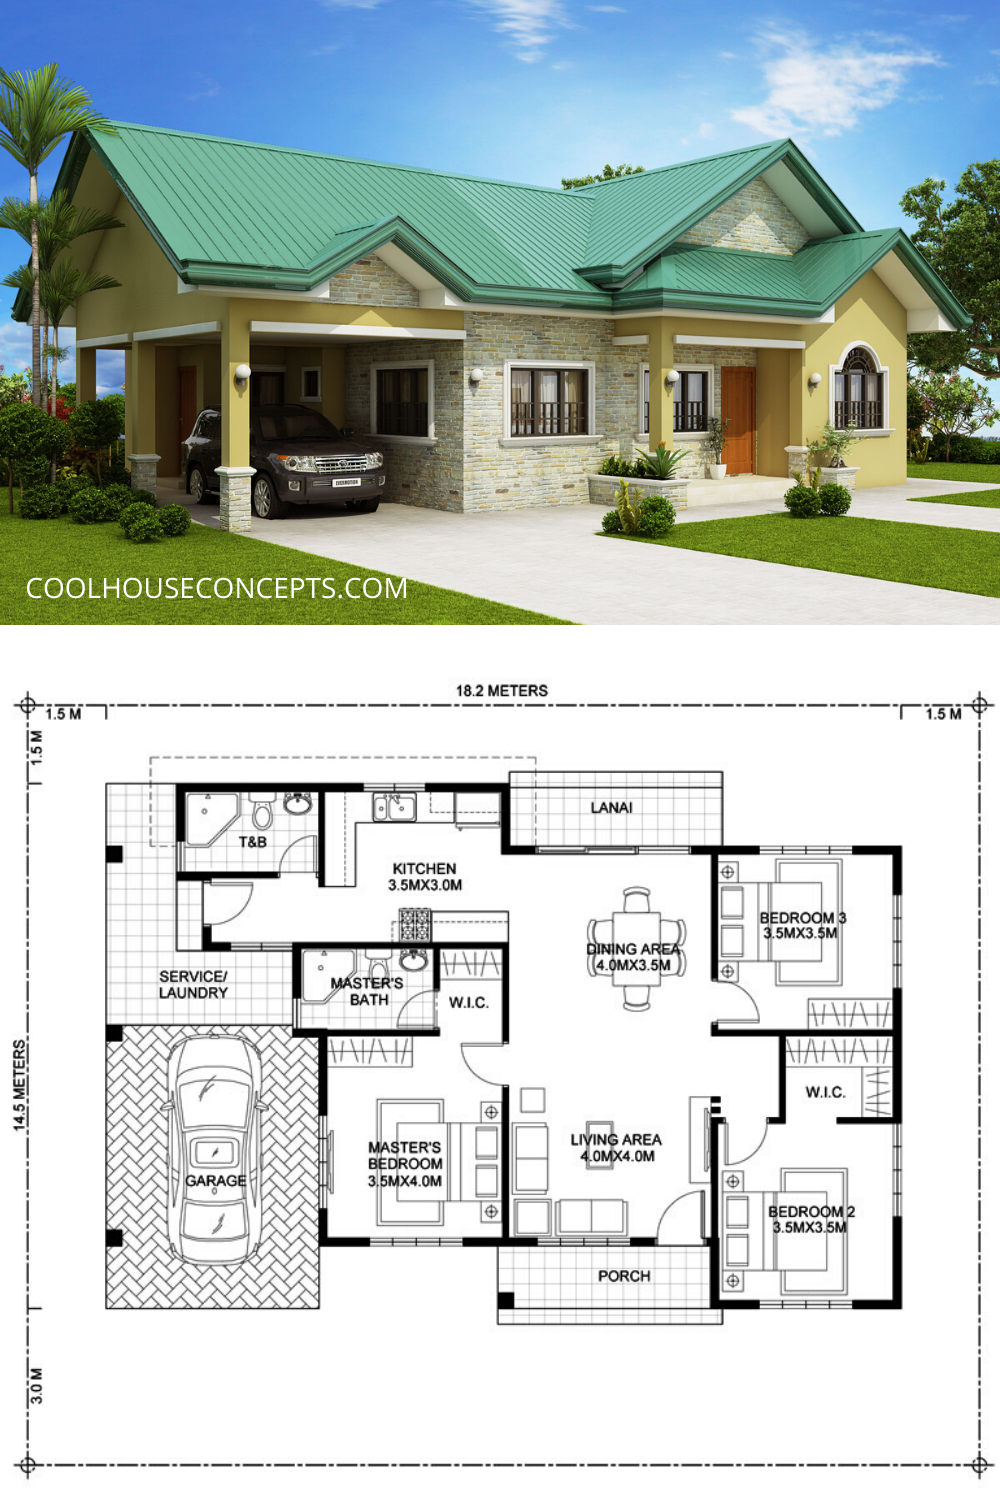 Charming Green Roof Bungalow House Concept In 2020 Model House Plan Beautiful House Plans My House Plans